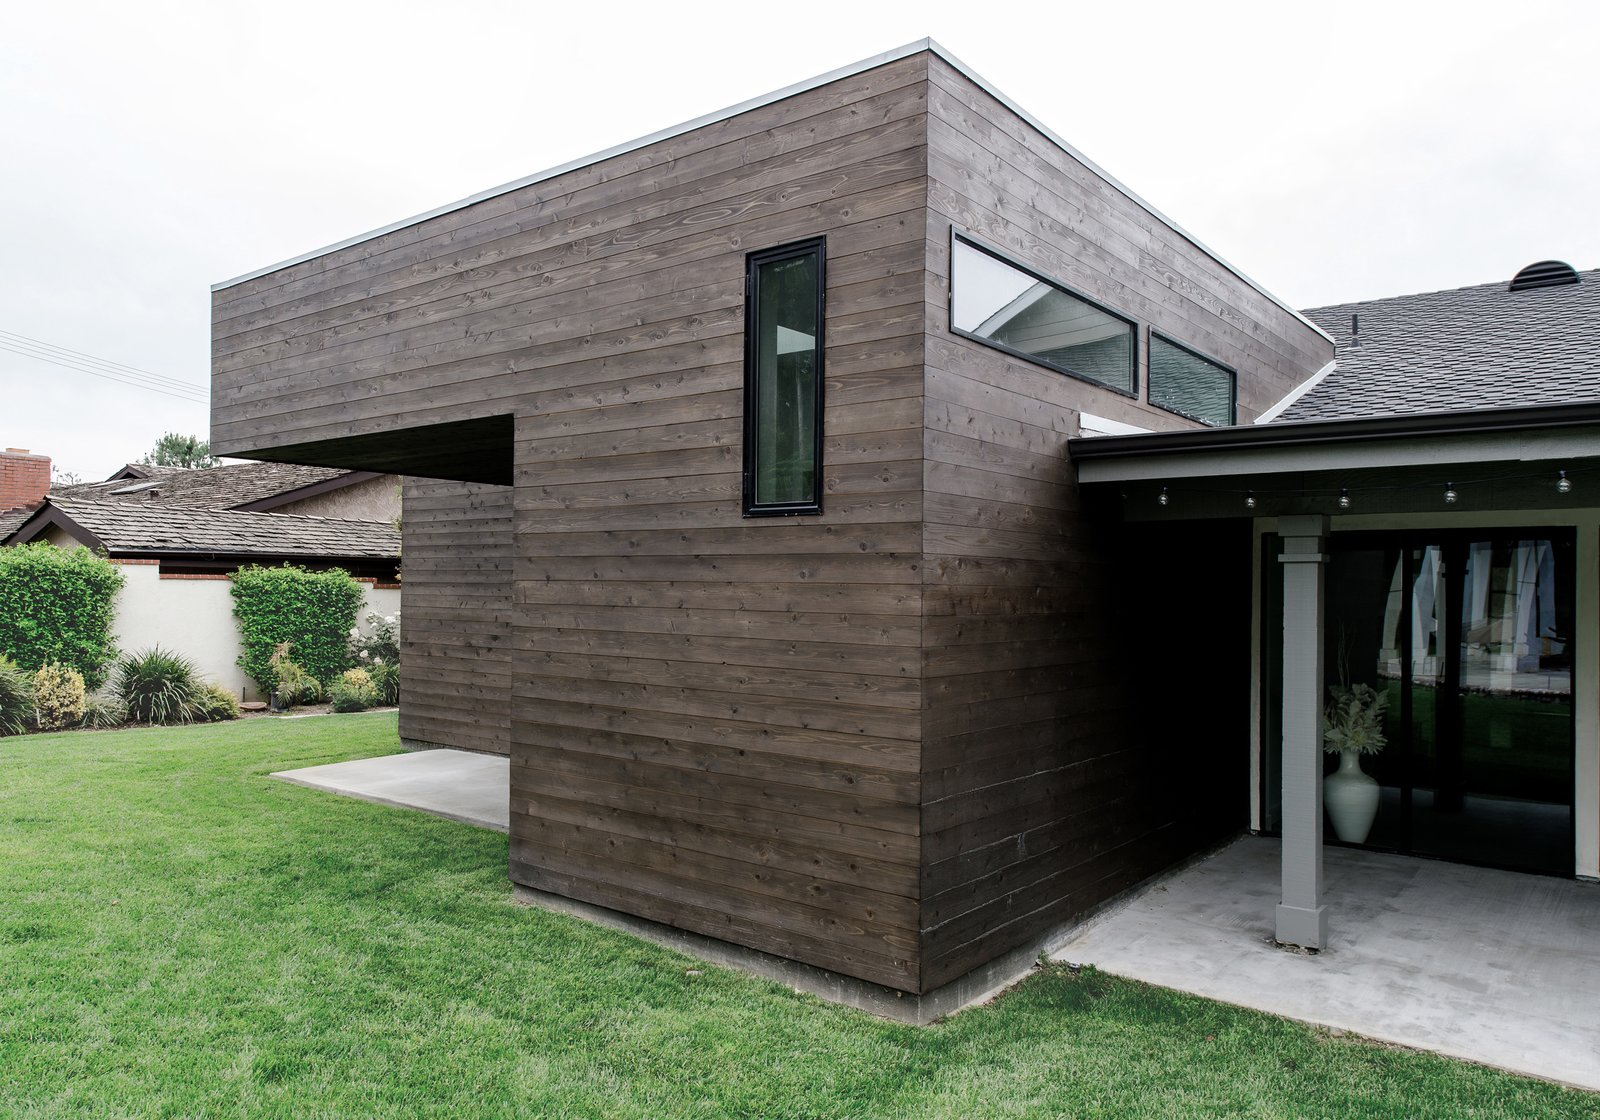 Outdoor, Back Yard, Grass, Hardscapes, Large Patio, Porch, Deck, Wood Patio, Porch, Deck, Concrete Patio, Porch, Deck, and Horizontal Fences, Wall The contemporary addition features dark cedar siding and a flat roof at the existing gable structure and rear patio.  Villa Park Modern by MYD studio, inc.